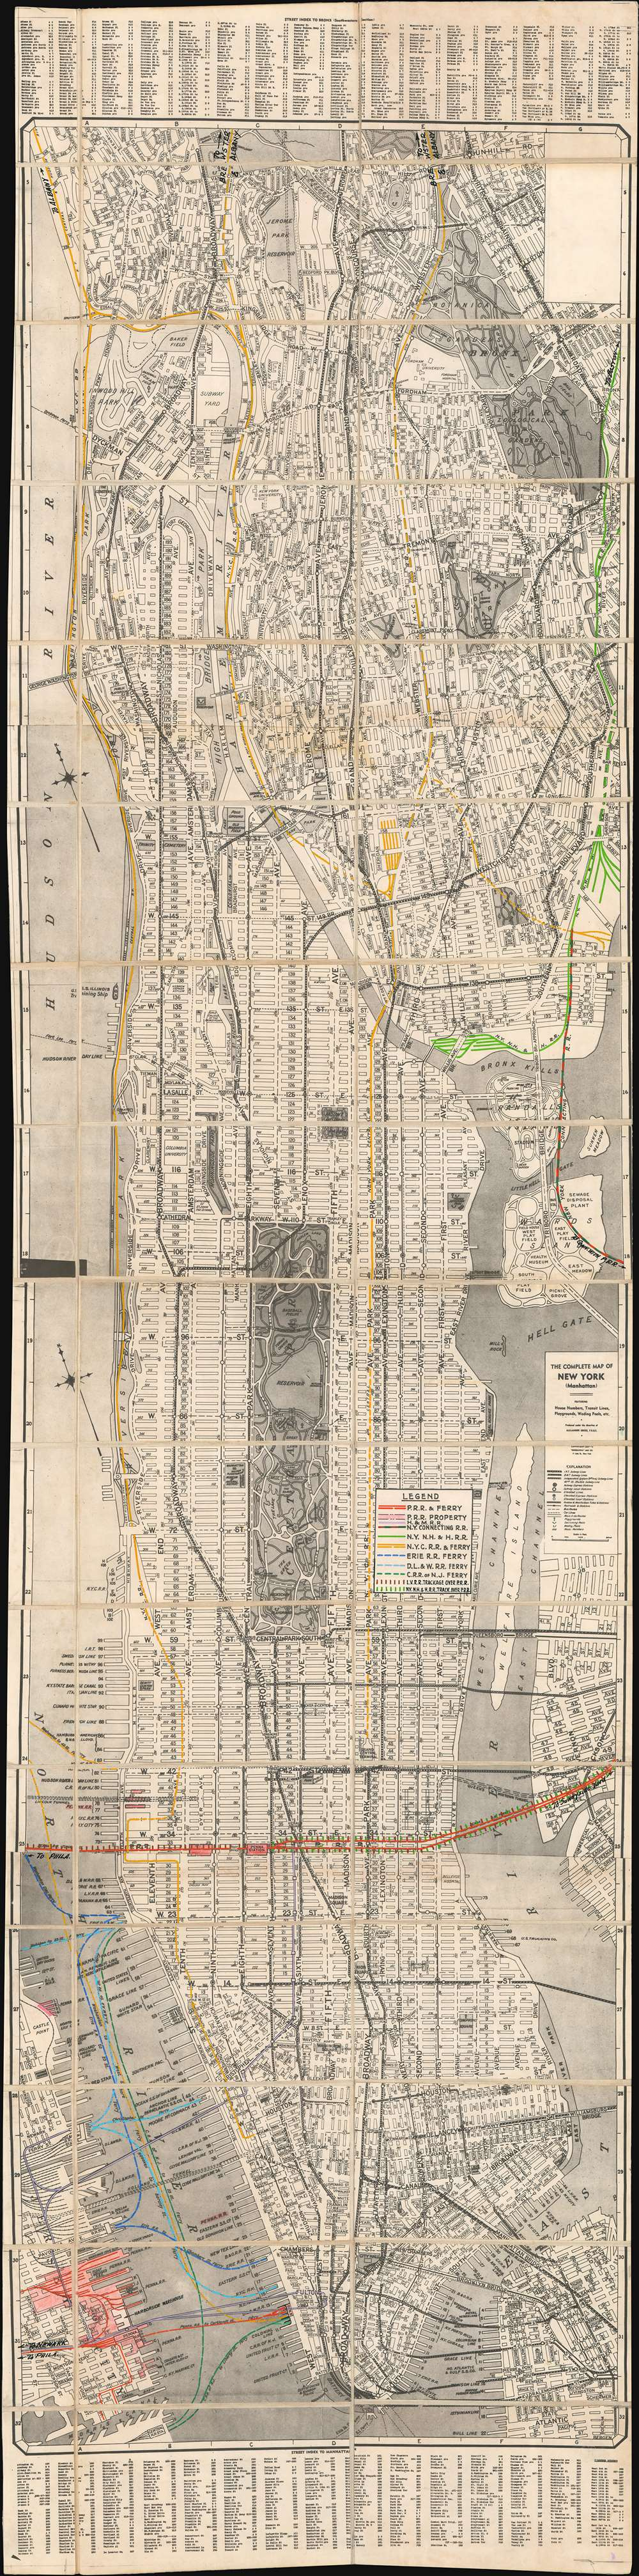 The Complete Map of New York (Manhattan) Featuring House Numbers, Transit Lines, Playgrounds, Wading Pools, etc. - Main View